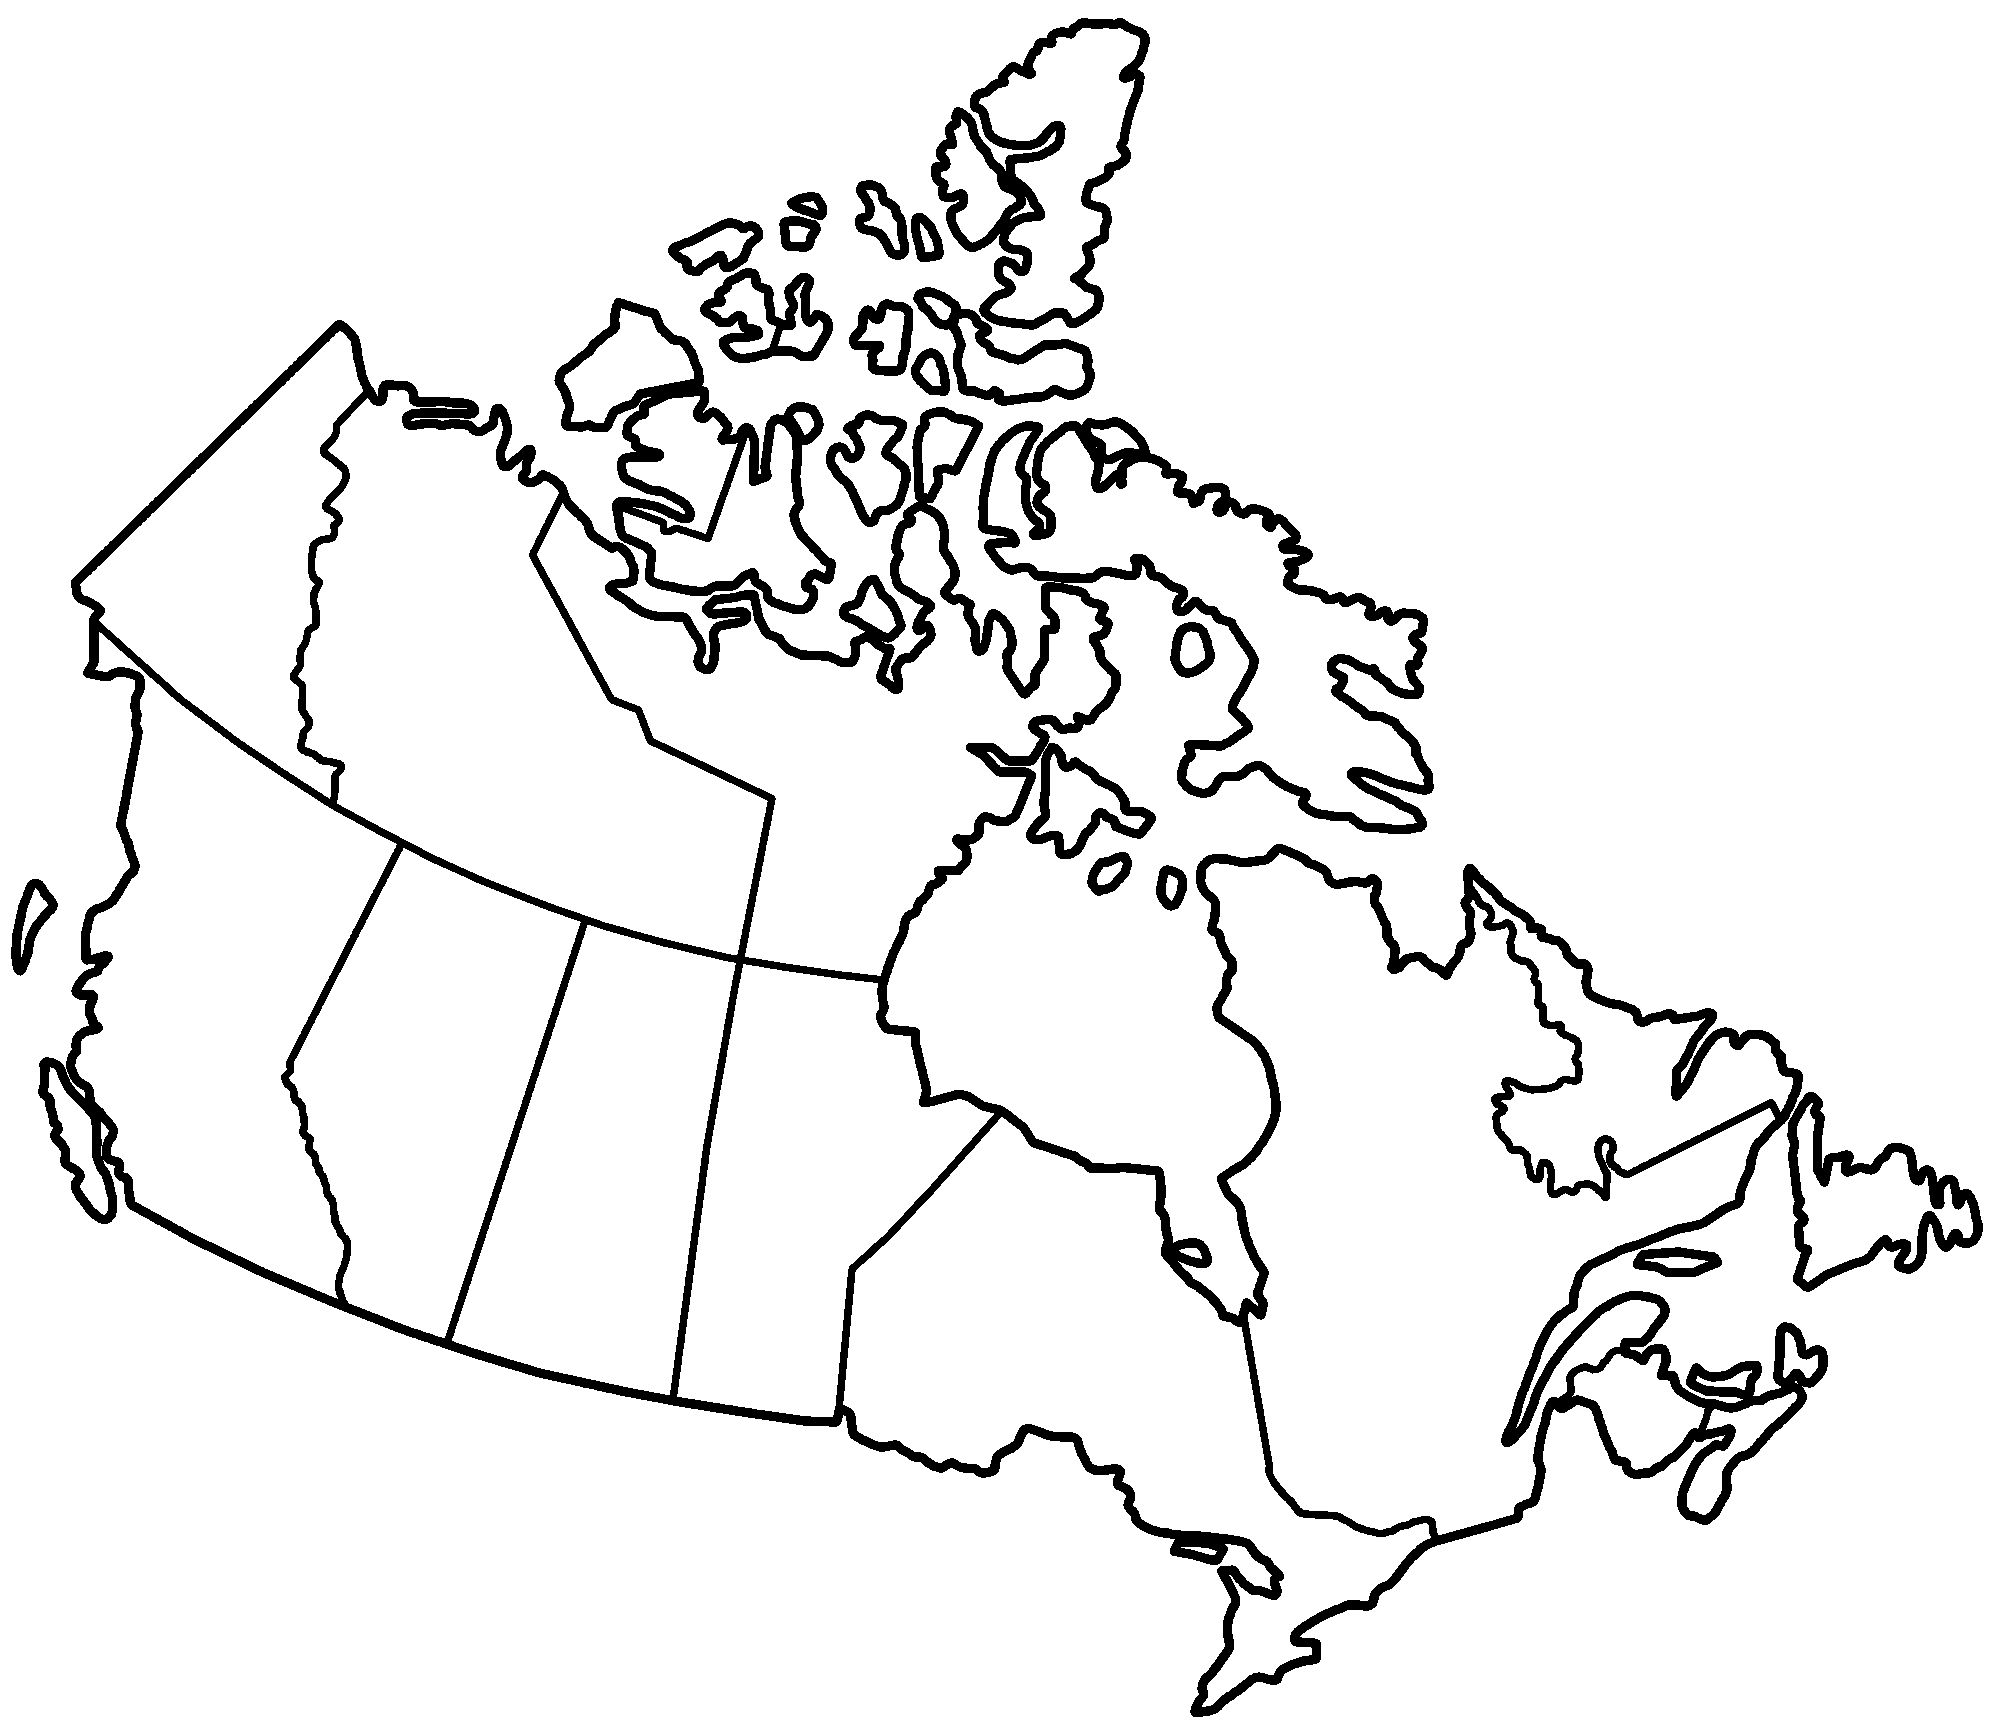 Unmarked Map Of Canada Map clipart printable, Map printable Transparent FREE for download